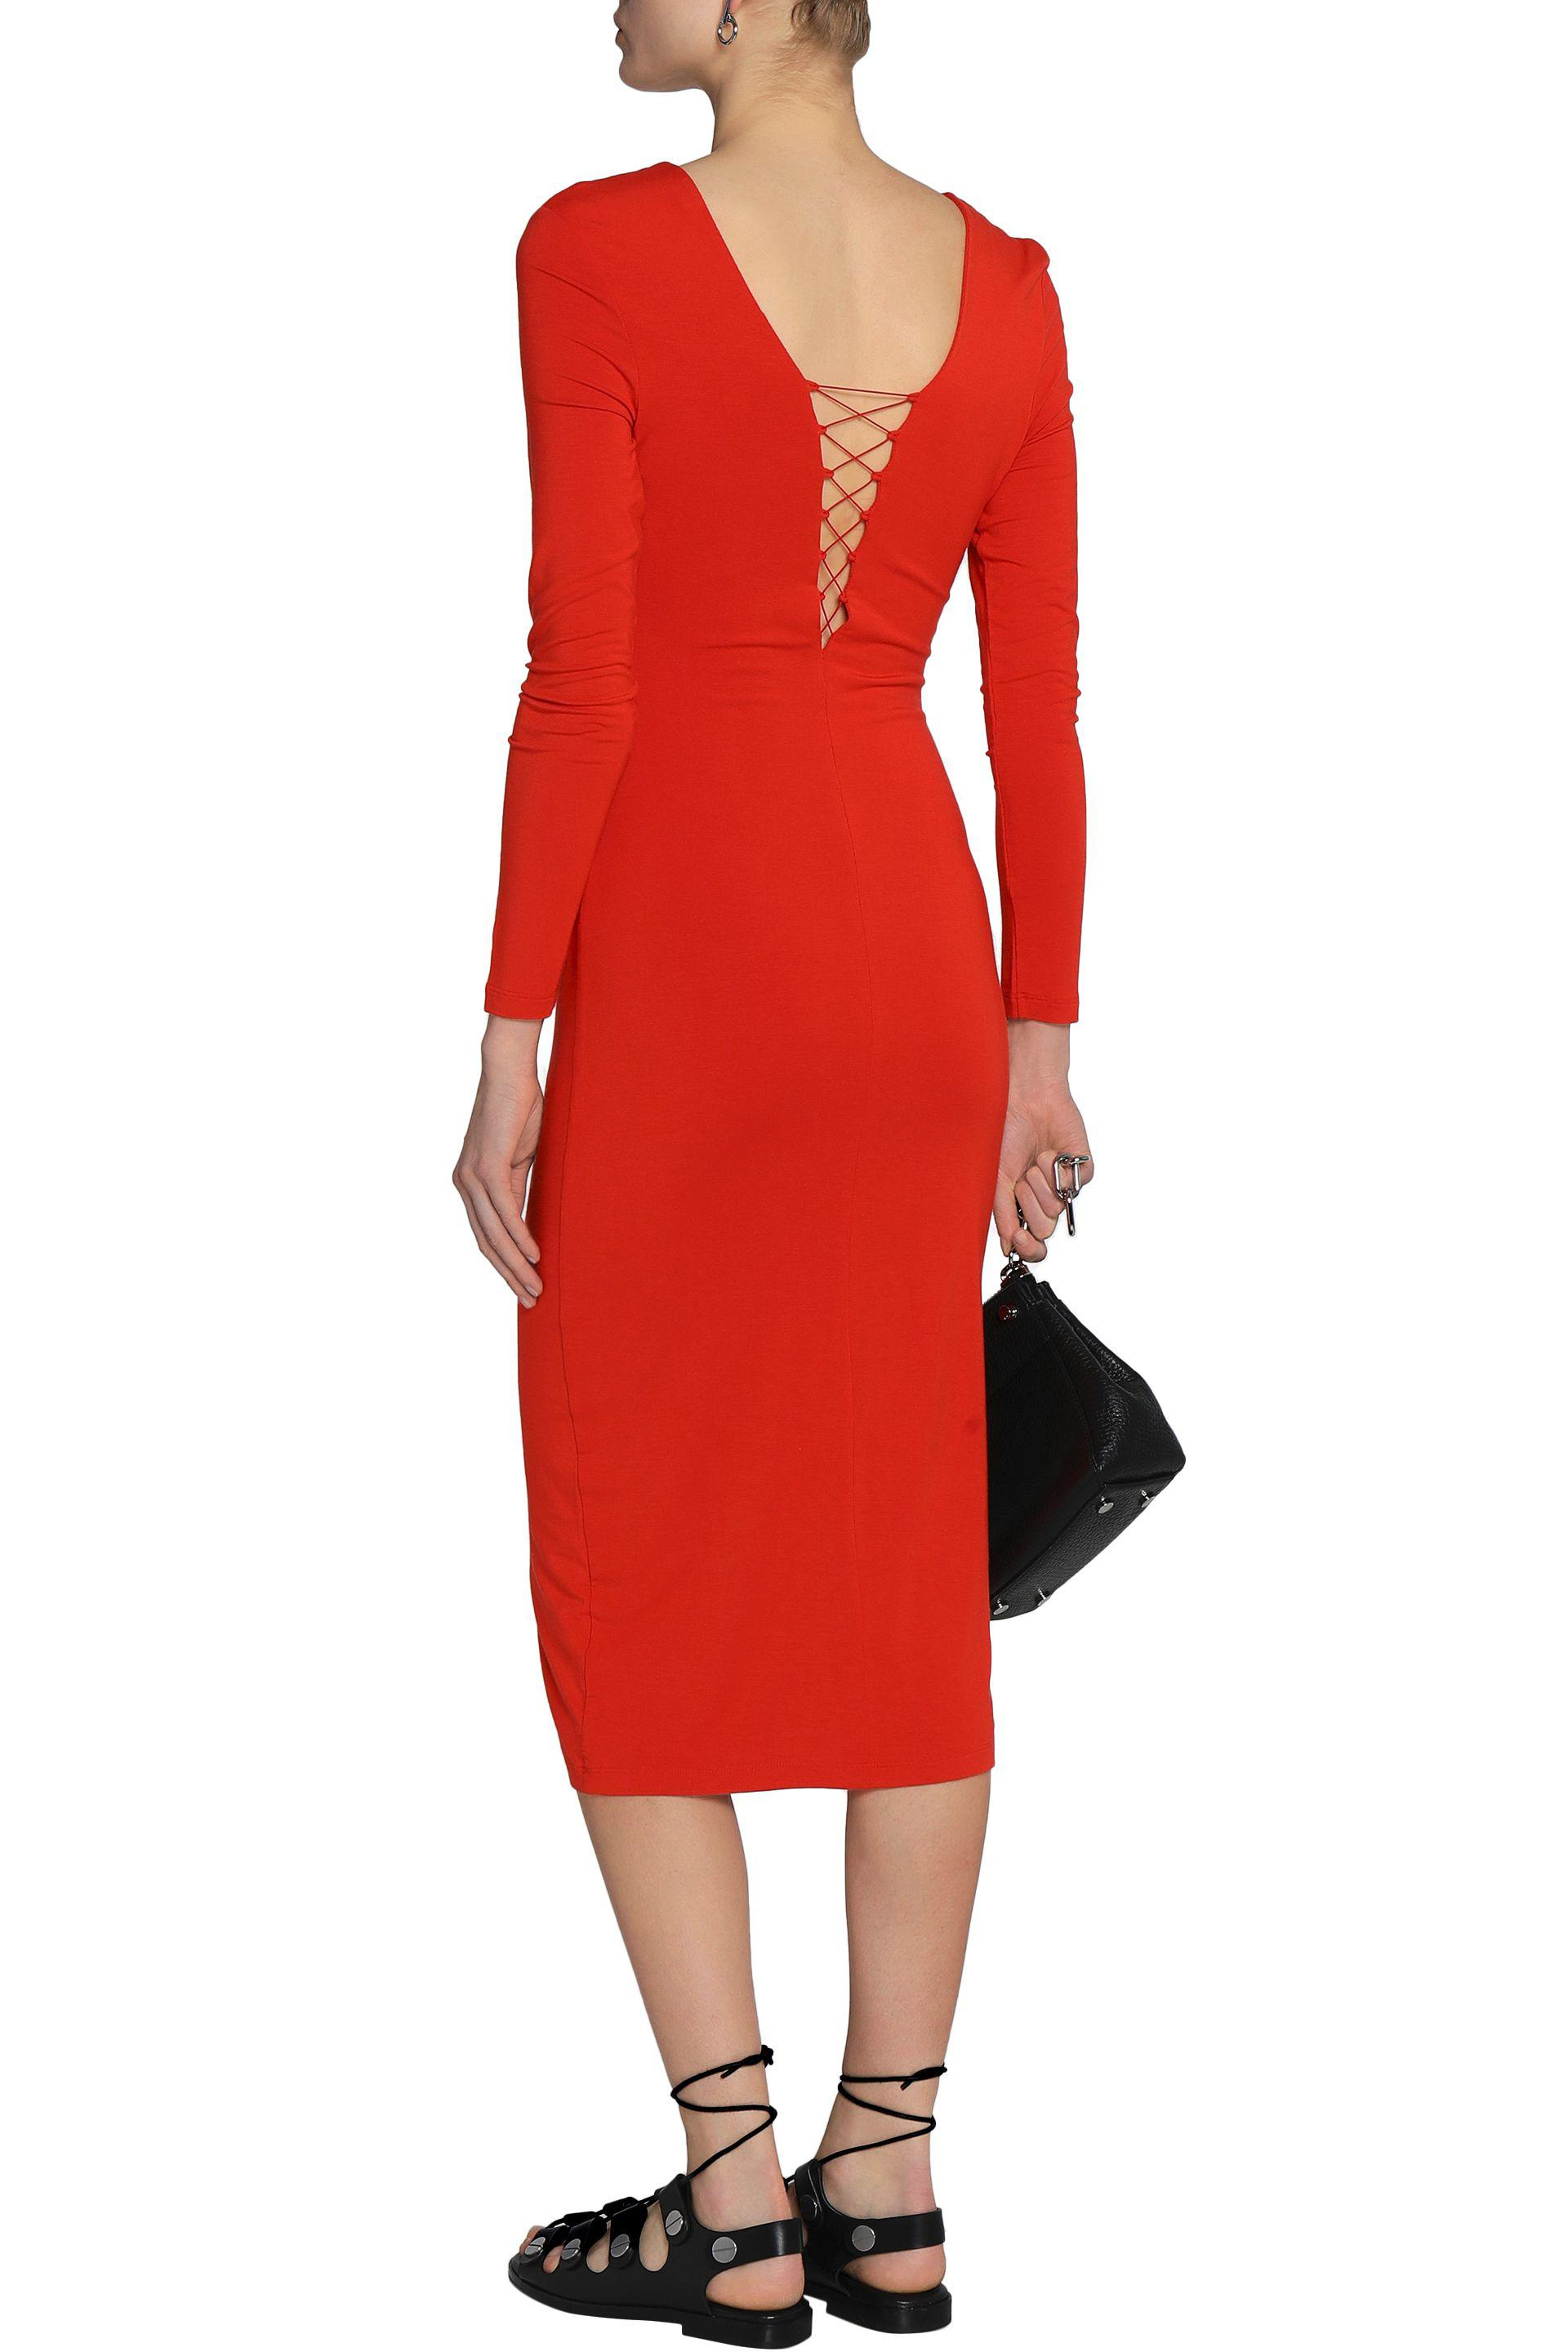 T By Alexander Wang Woman Lace-up Stretch-modal Jersey Midi Dress Red Size XS Alexander Wang ZtltFFQ